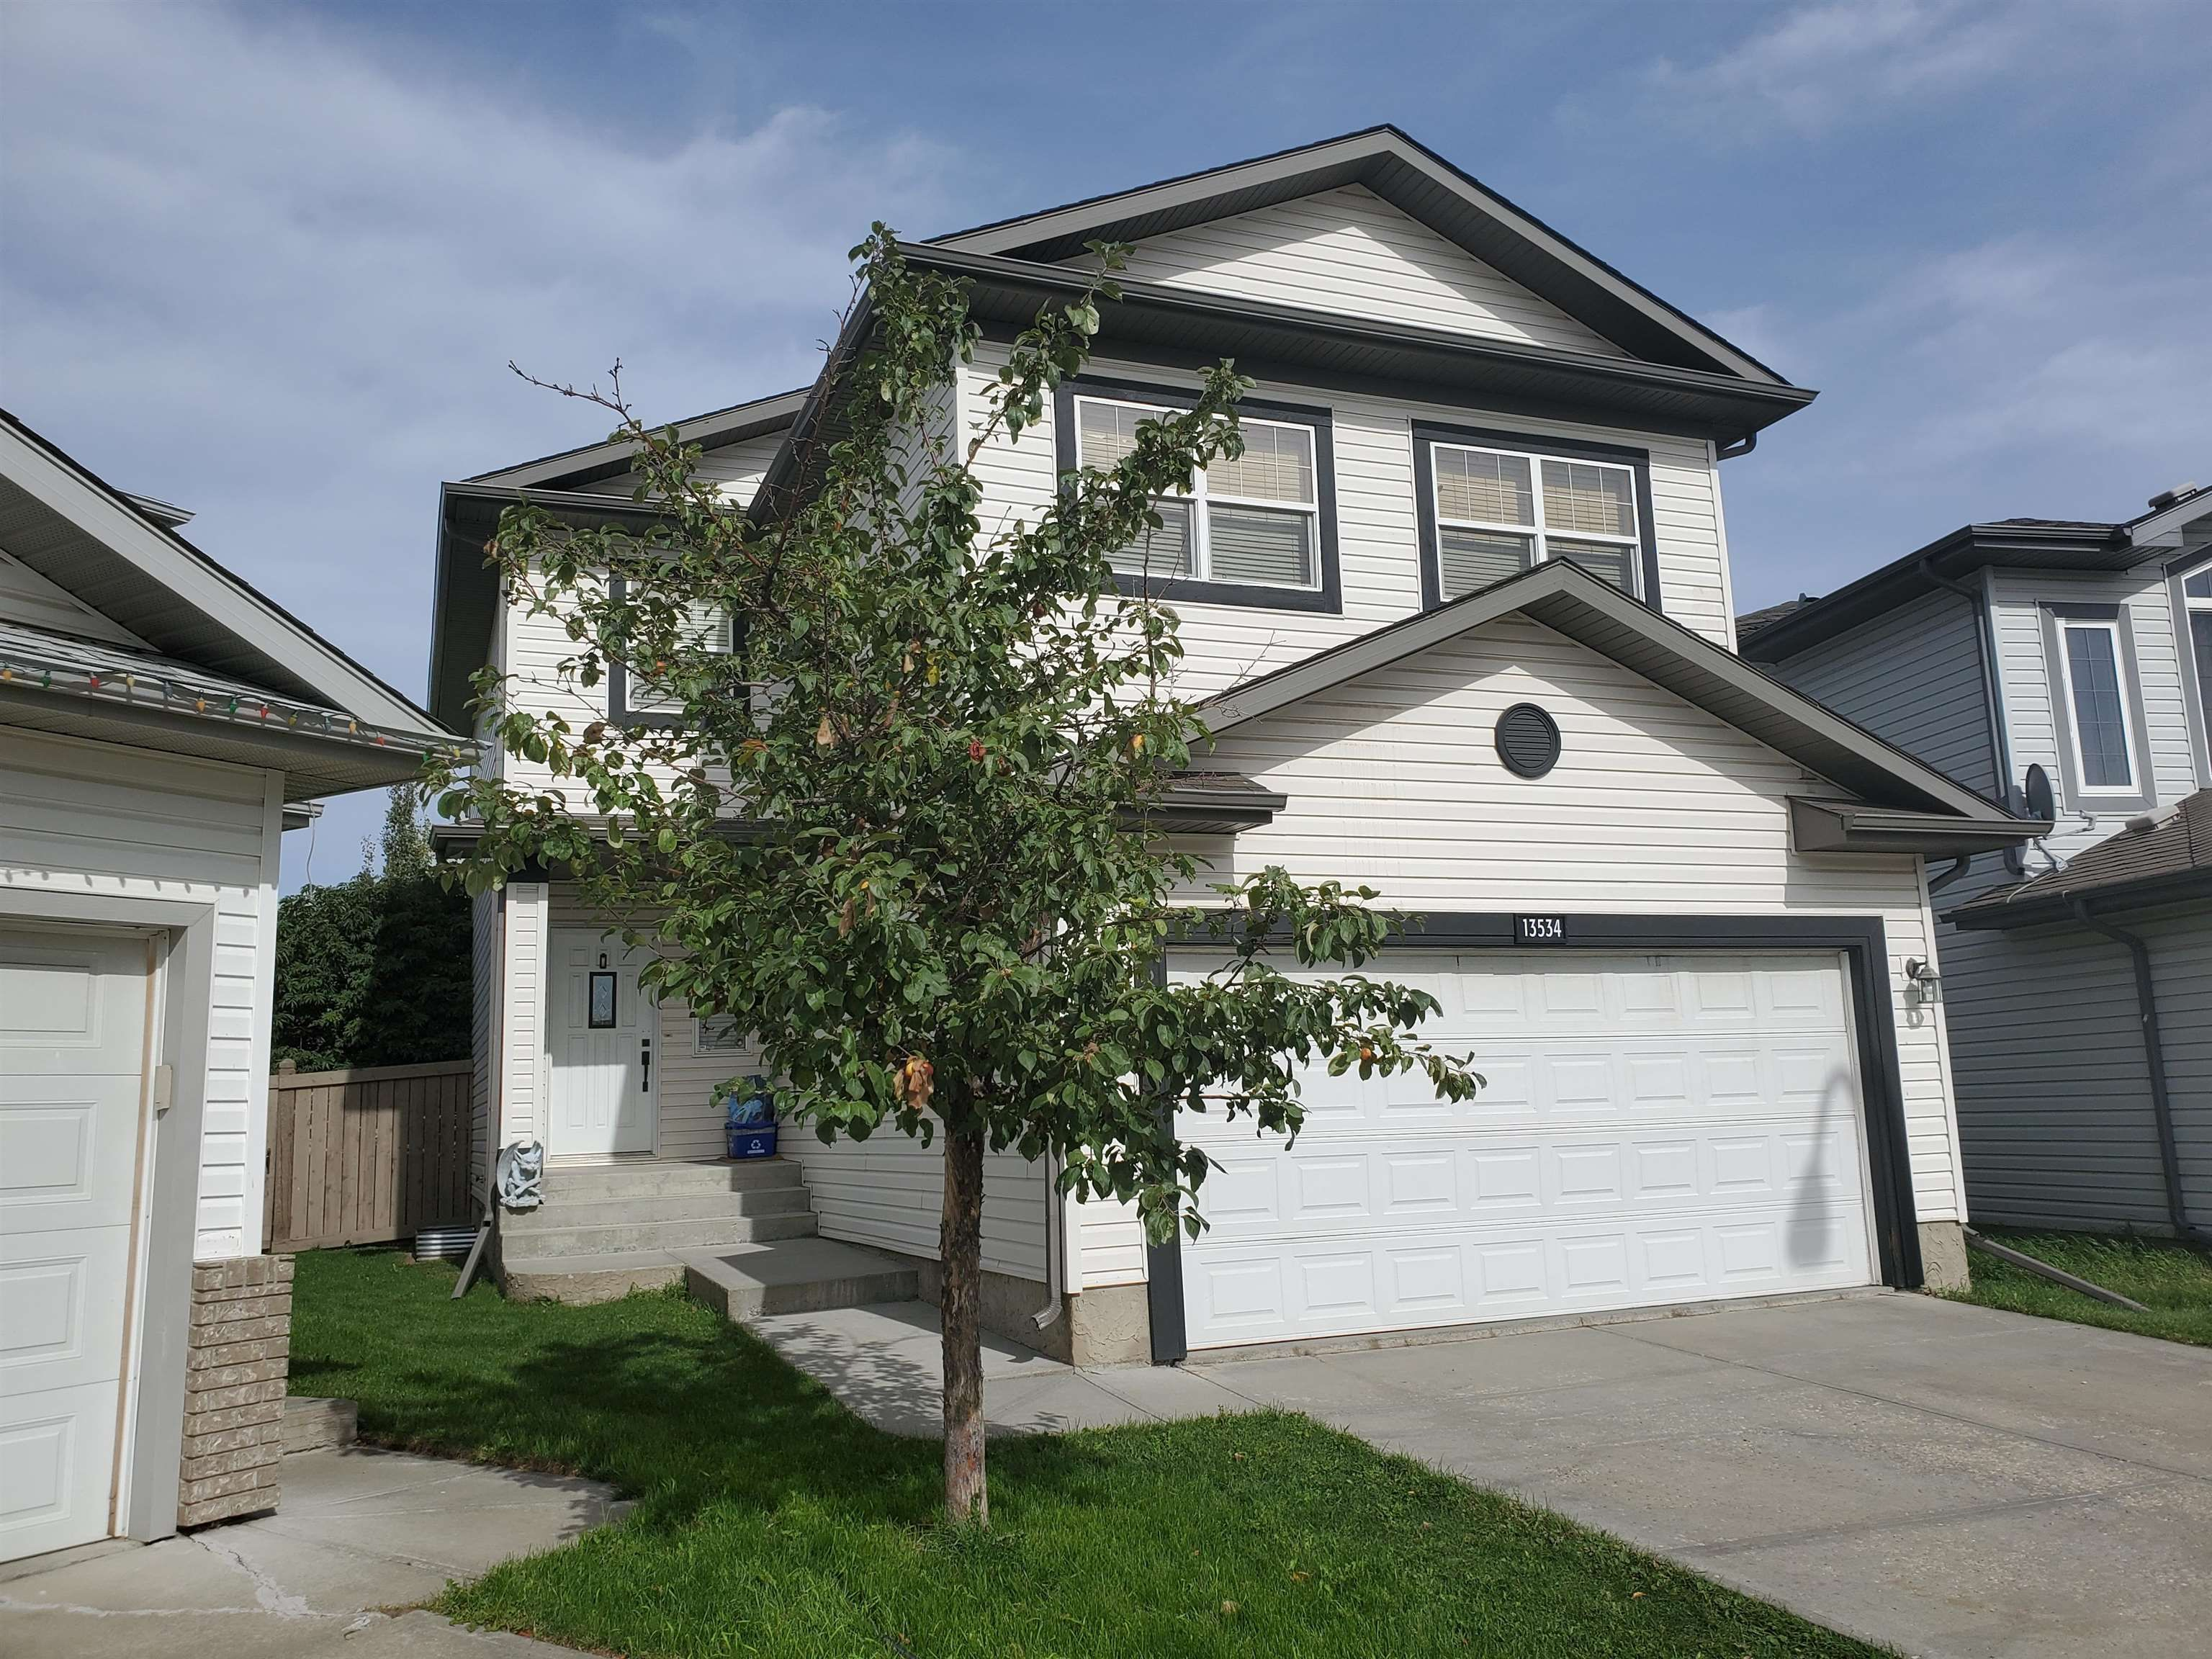 Main Photo: 13534 141A Avenue NW in Edmonton: Zone 27 House for sale : MLS®# E4264405